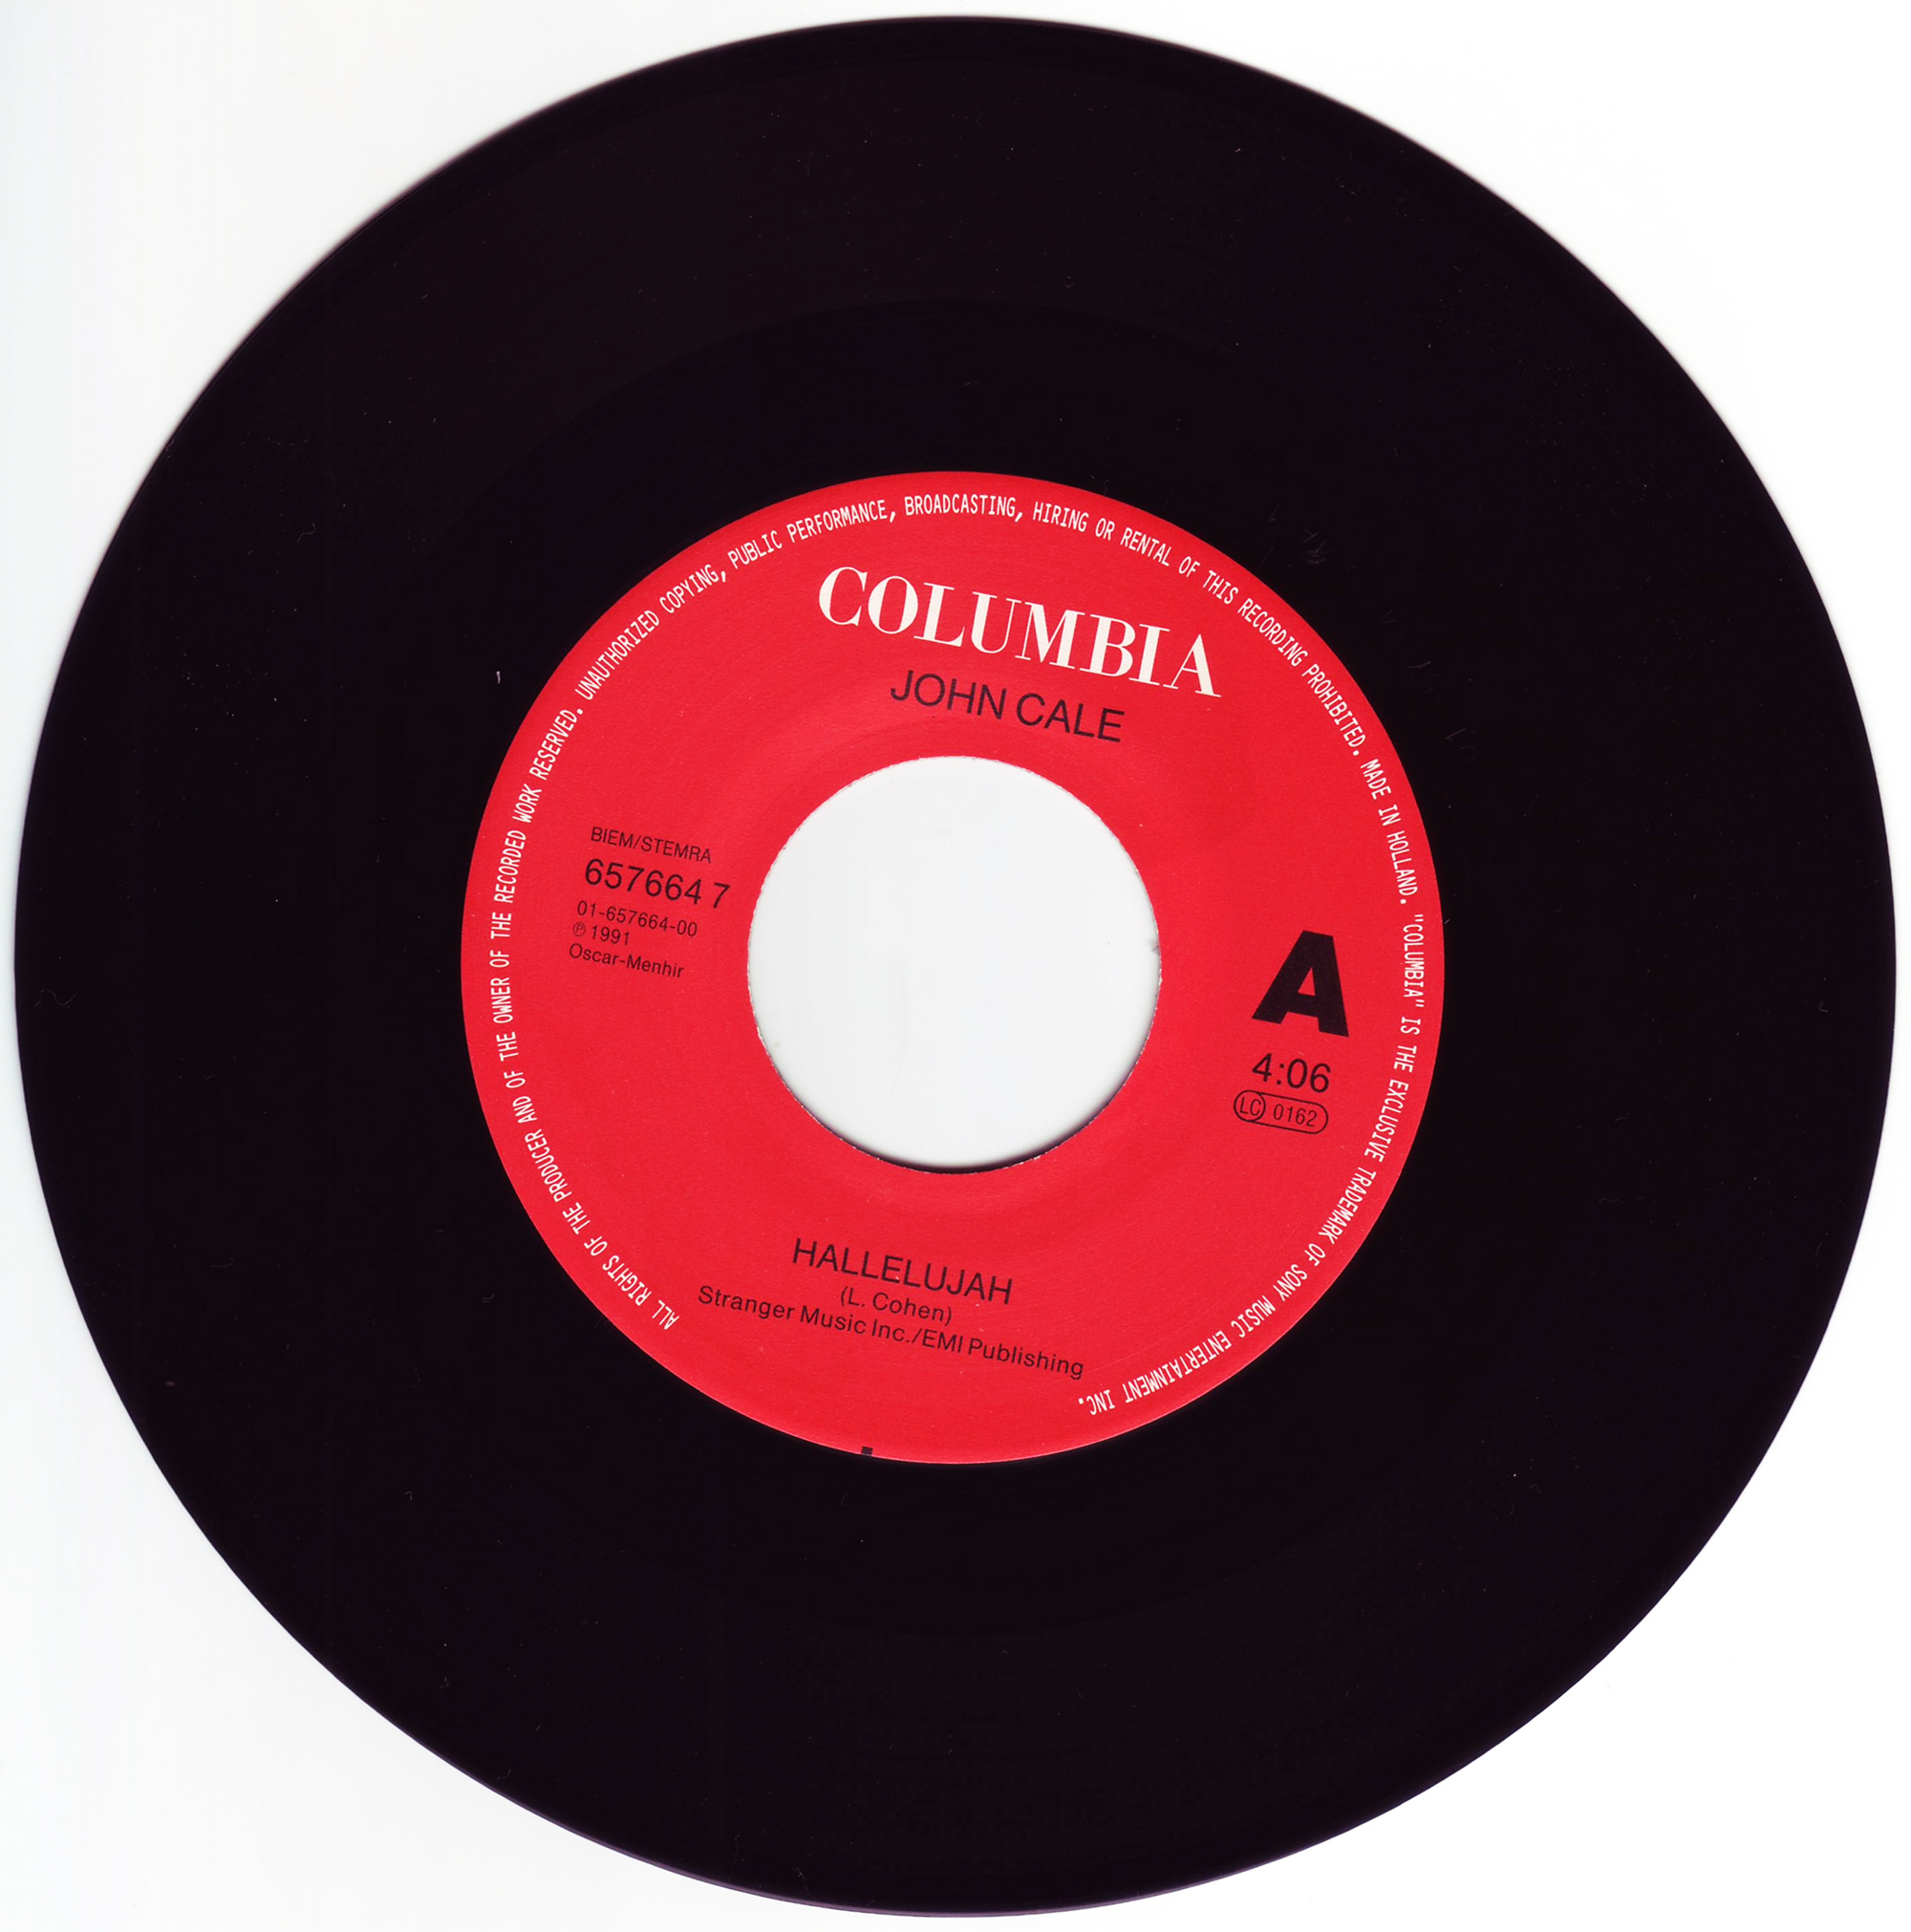 Cohen Hallelujah 45 RPM Vinyl Record   ClipArt Best  ClipArt Best